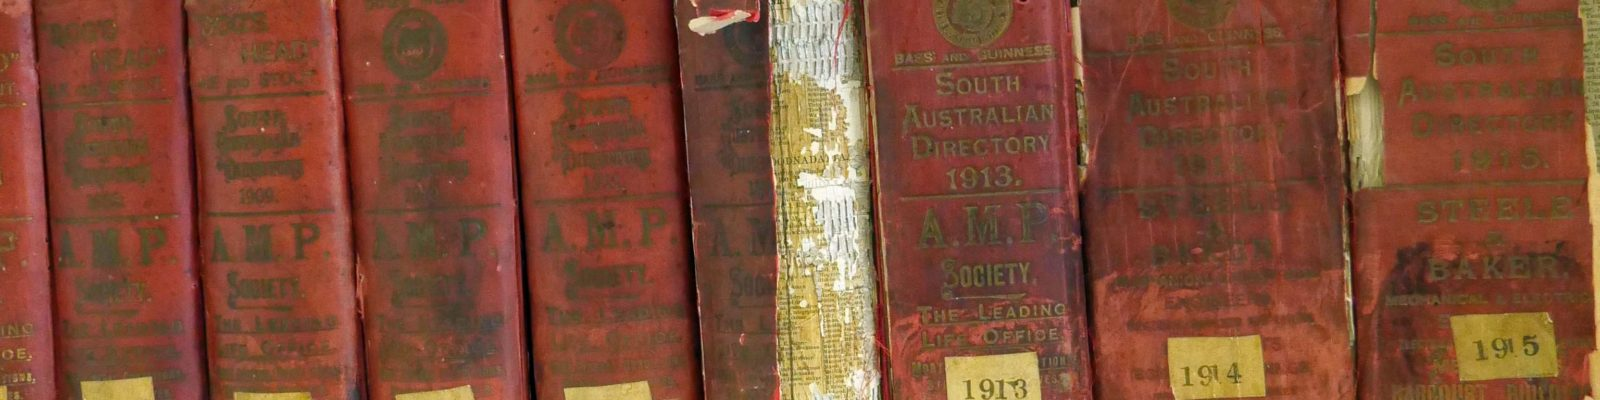 Row of books with years listed on the spines.